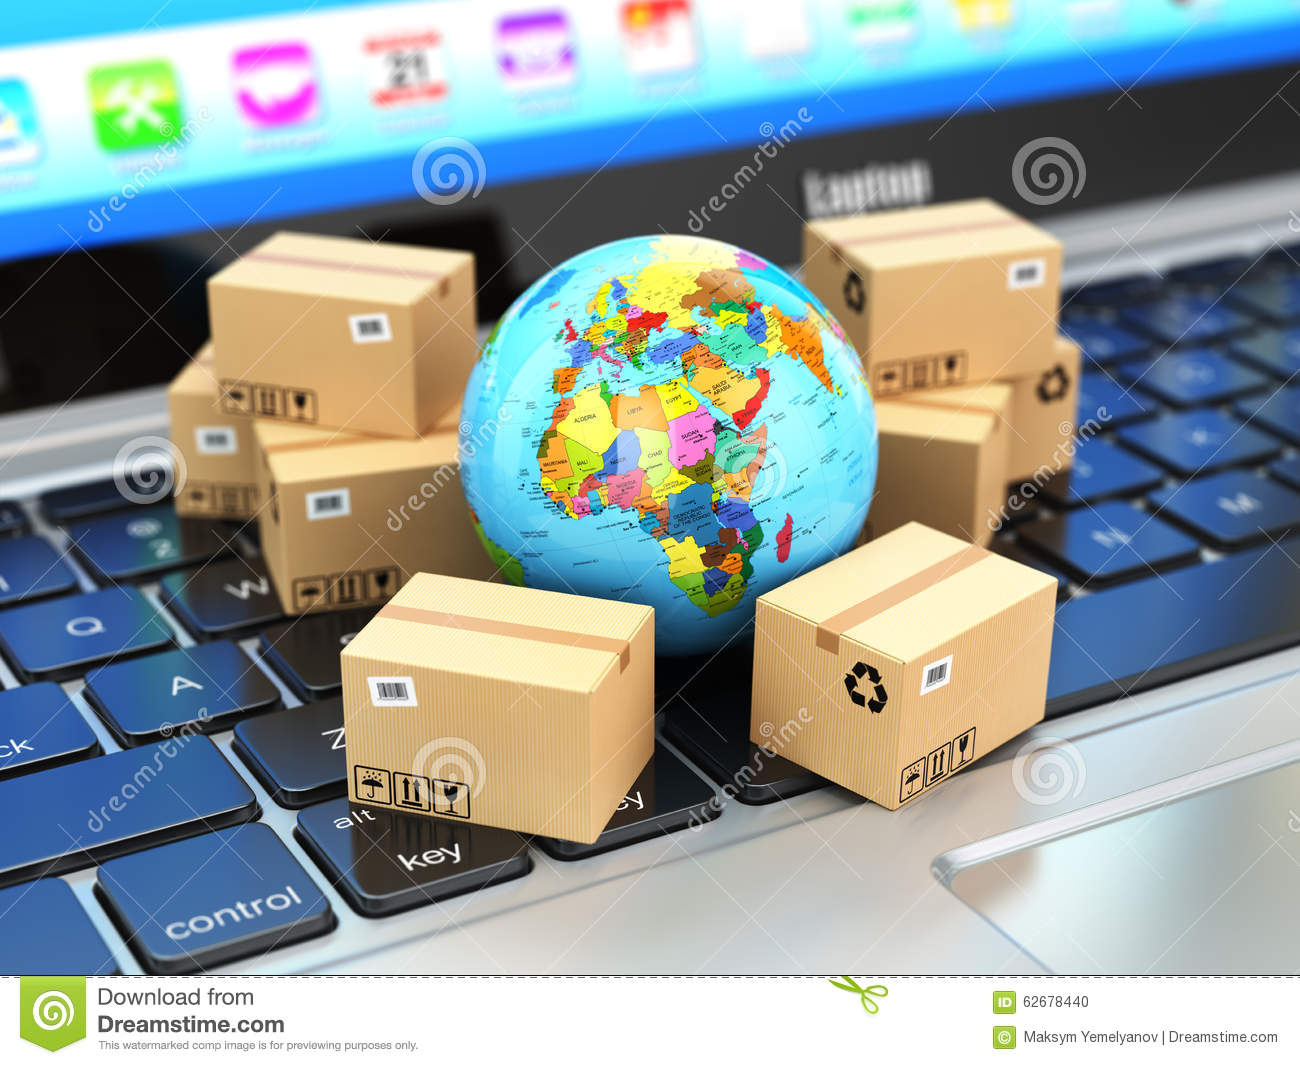 how to watch shipping delivery online